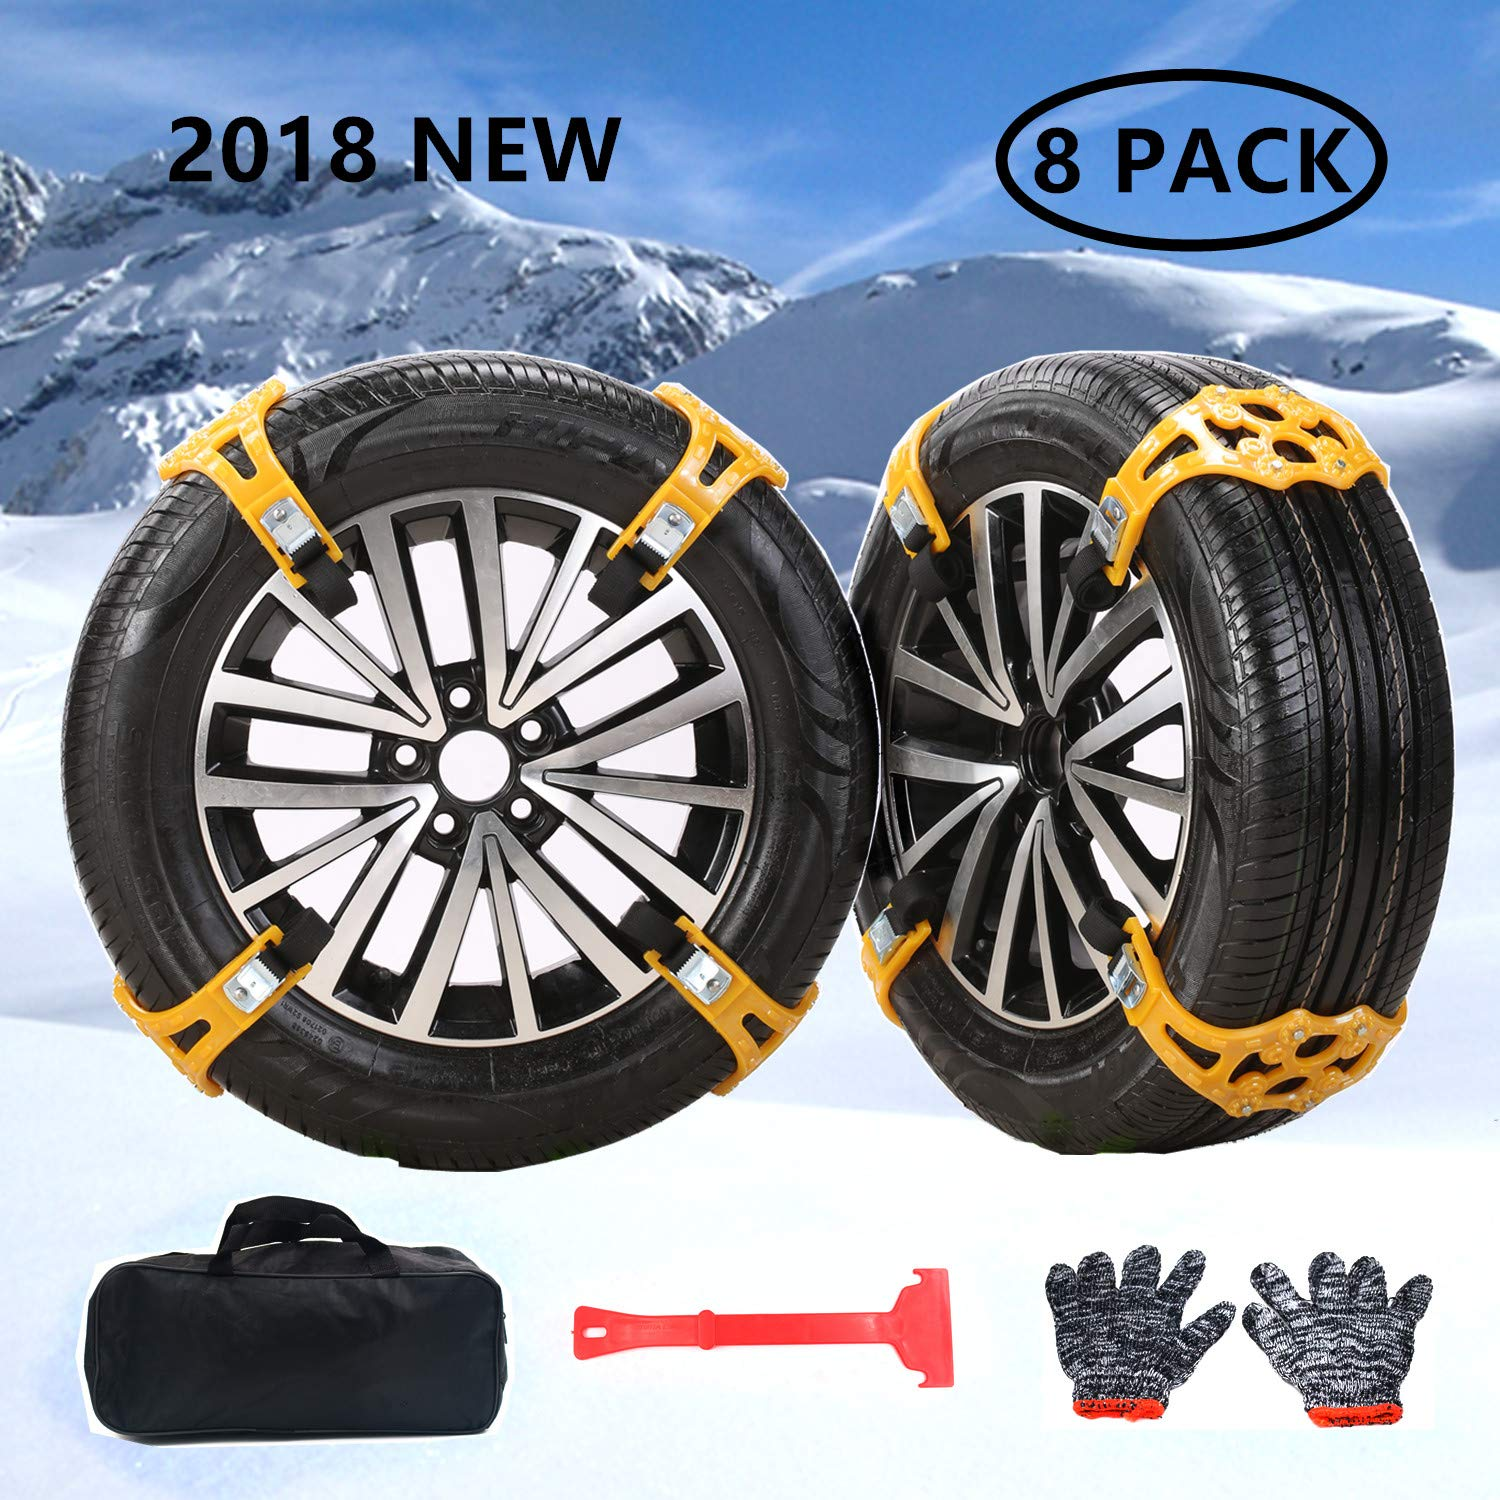 Universal Snow Tire Chains for Cars Light Trucks SUV Sedan Family Automobiles ATV with Update TPR Material for Emergency, Ice Snow Mud SandApplicable,Tire Width 165-275mm/6.5-10.8in(8 Pack) Ease2U Direct